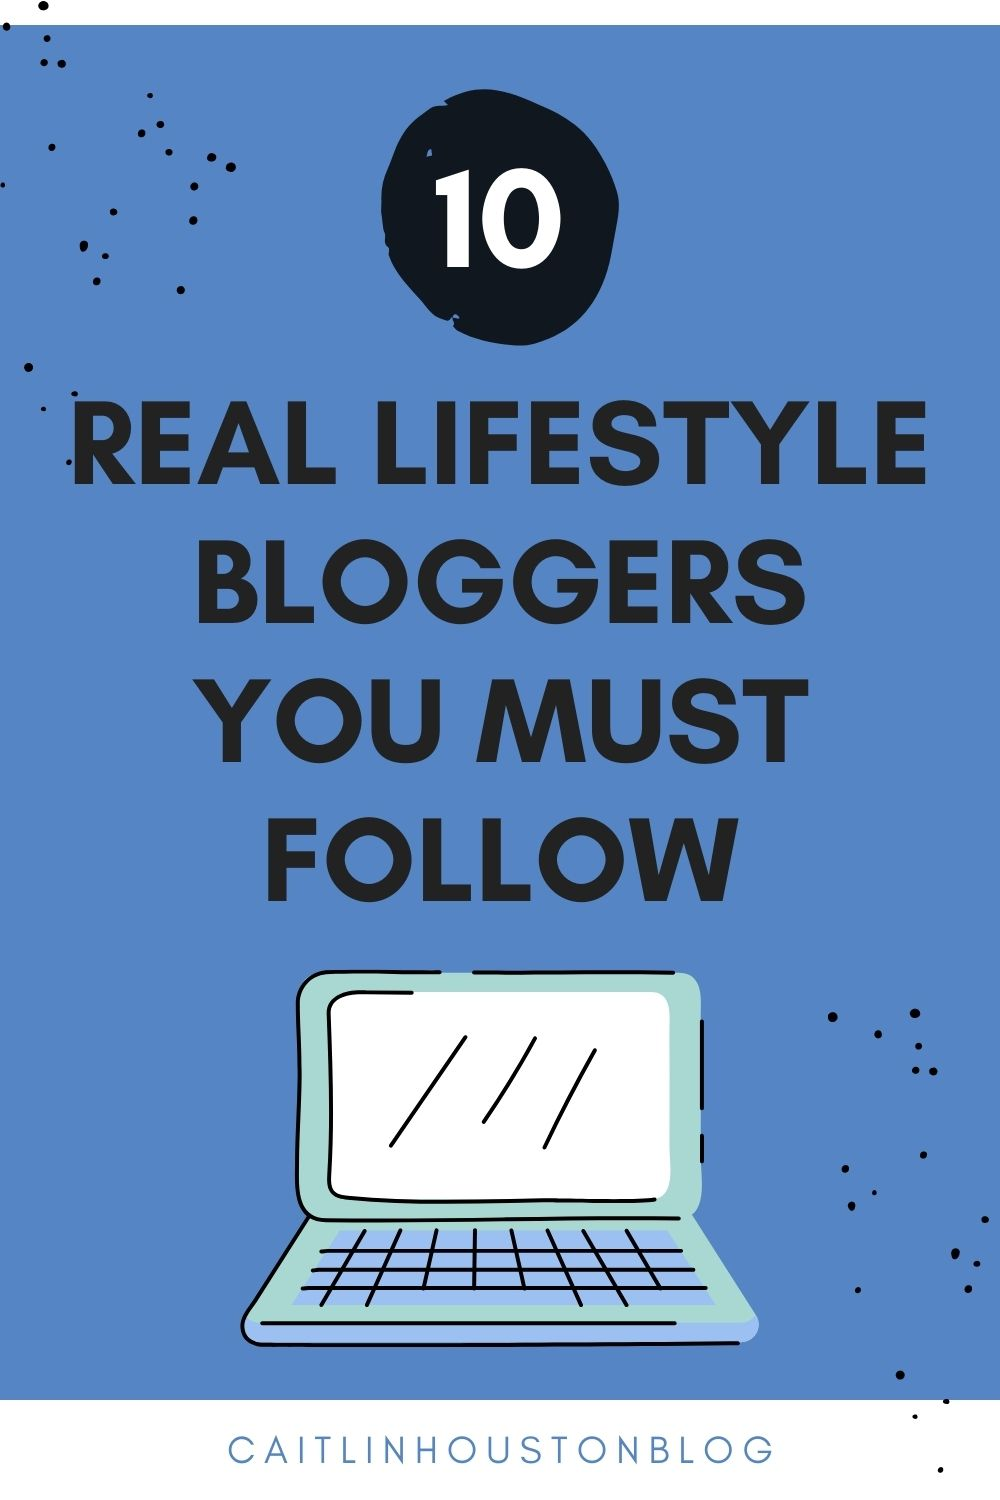 10 Must Follow Lifestyle bloggers.